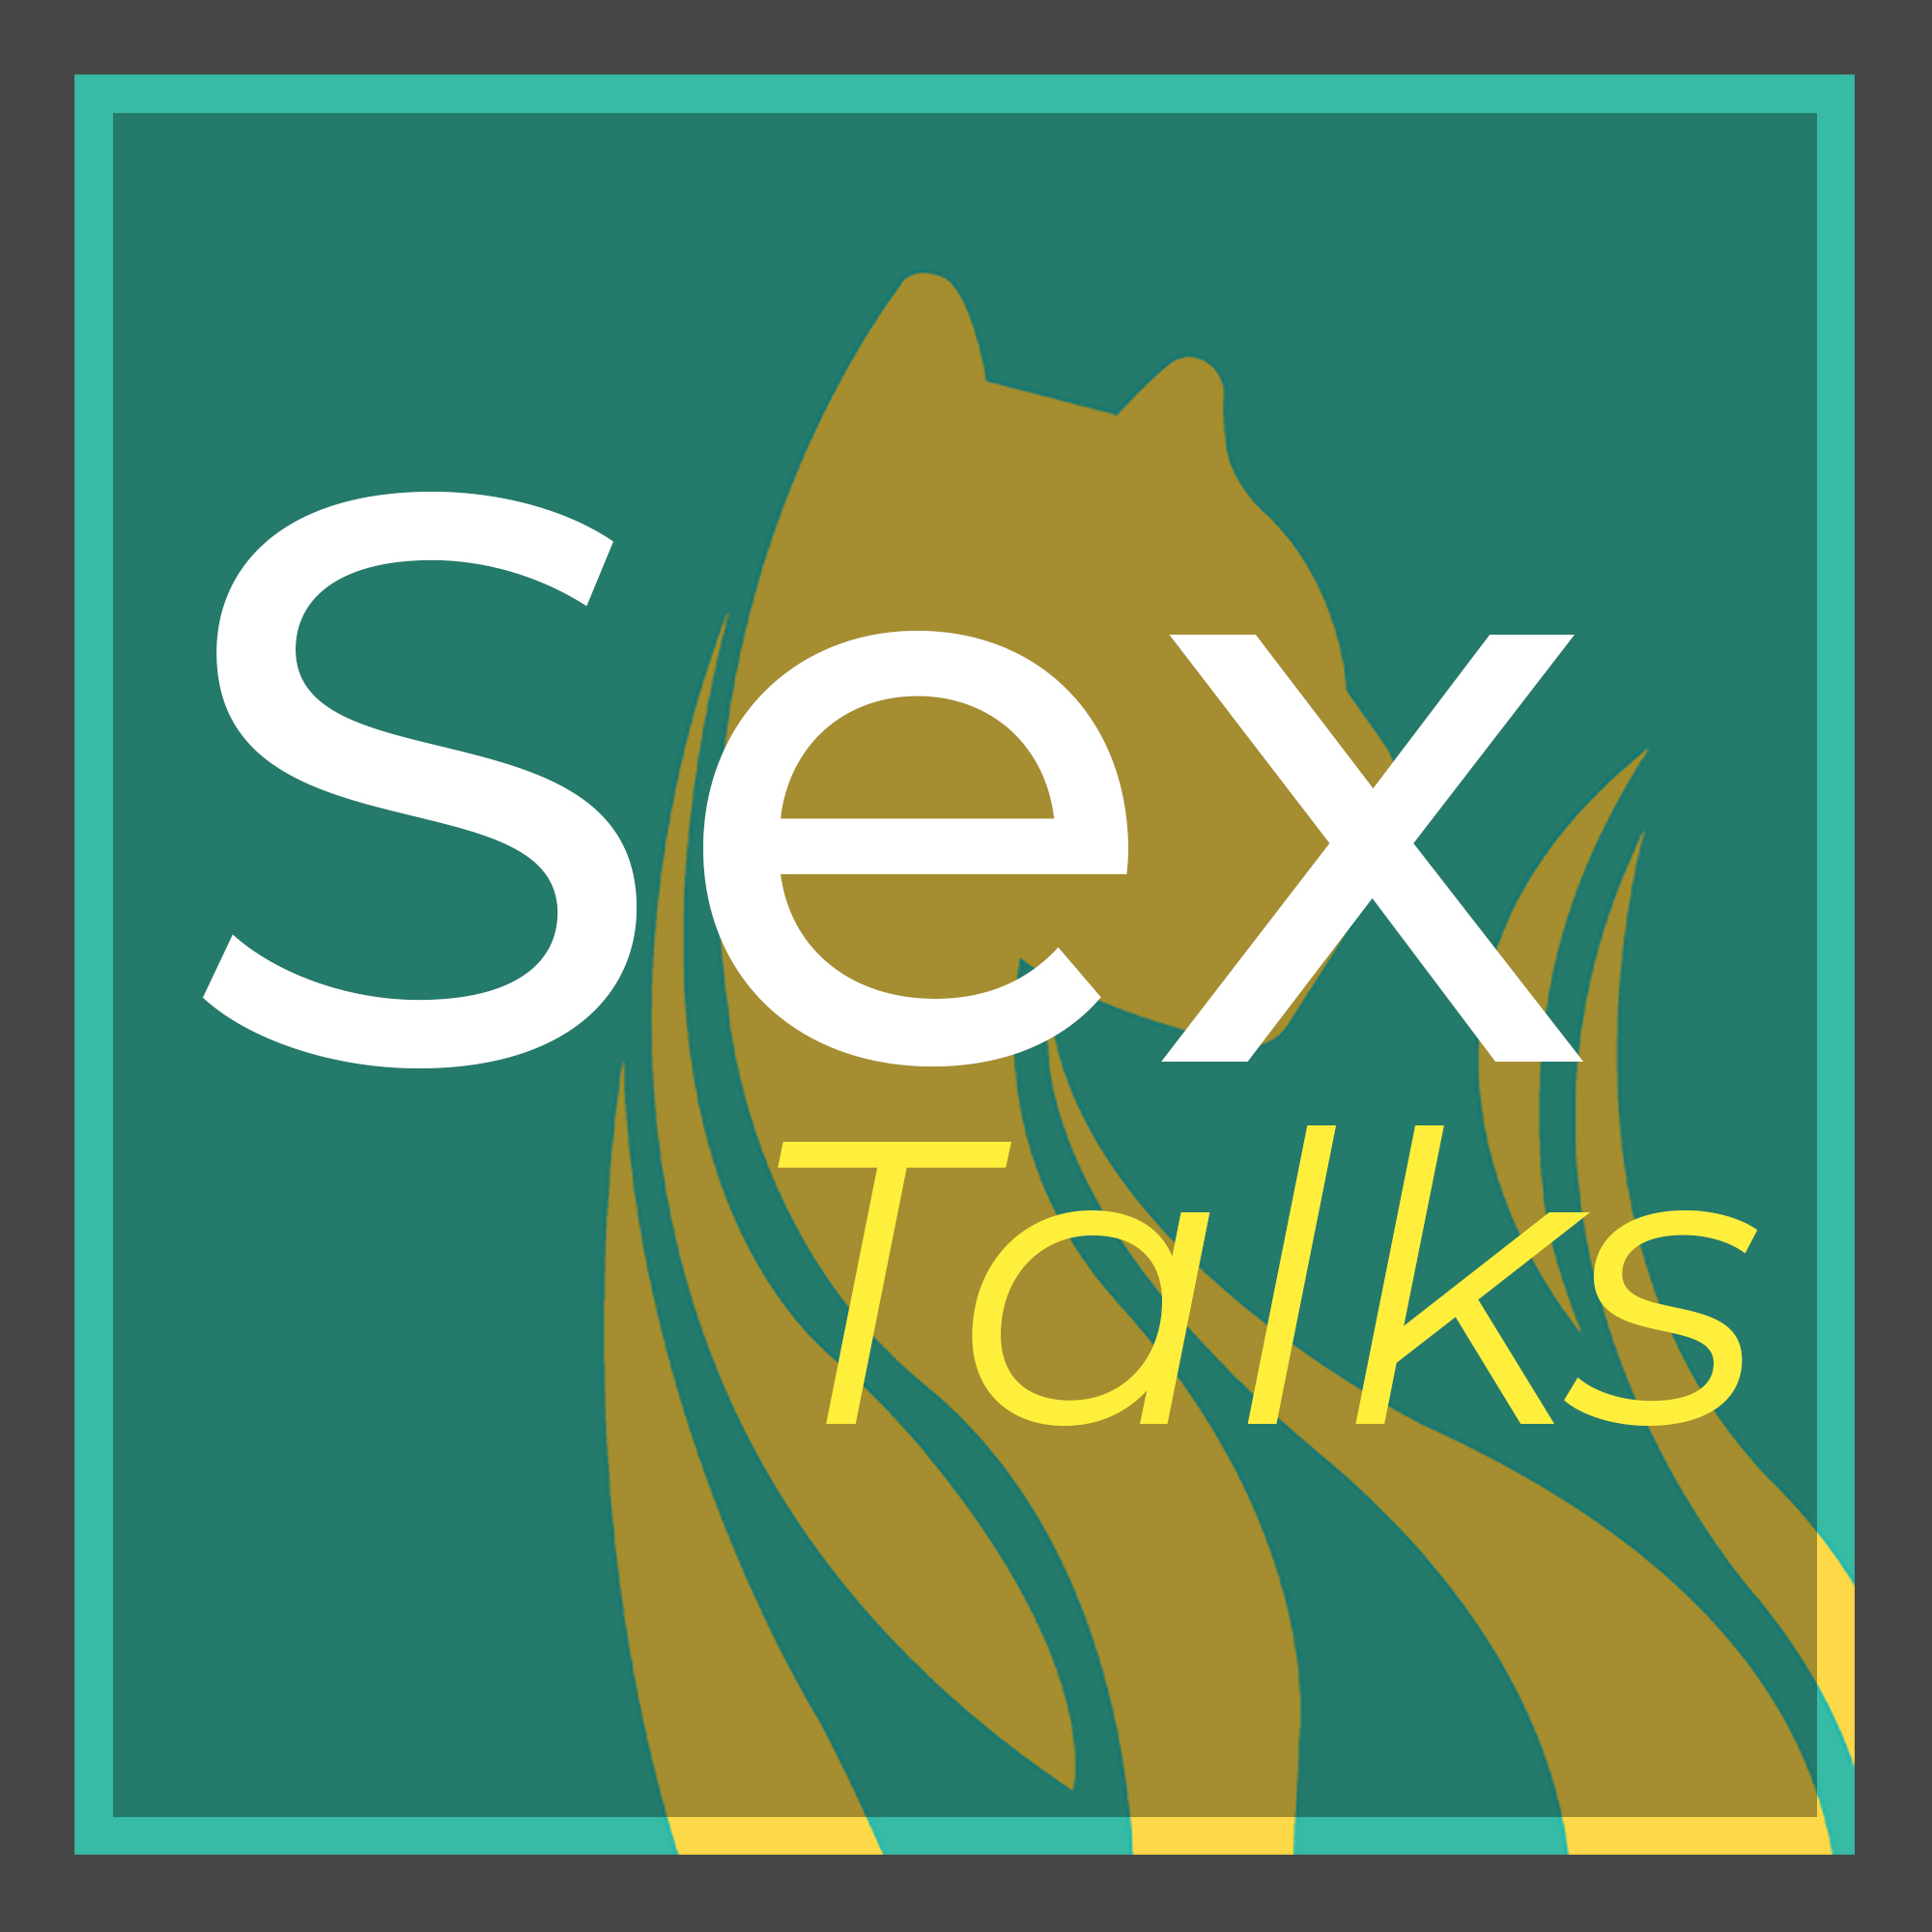 What podcasts on itunes have sex